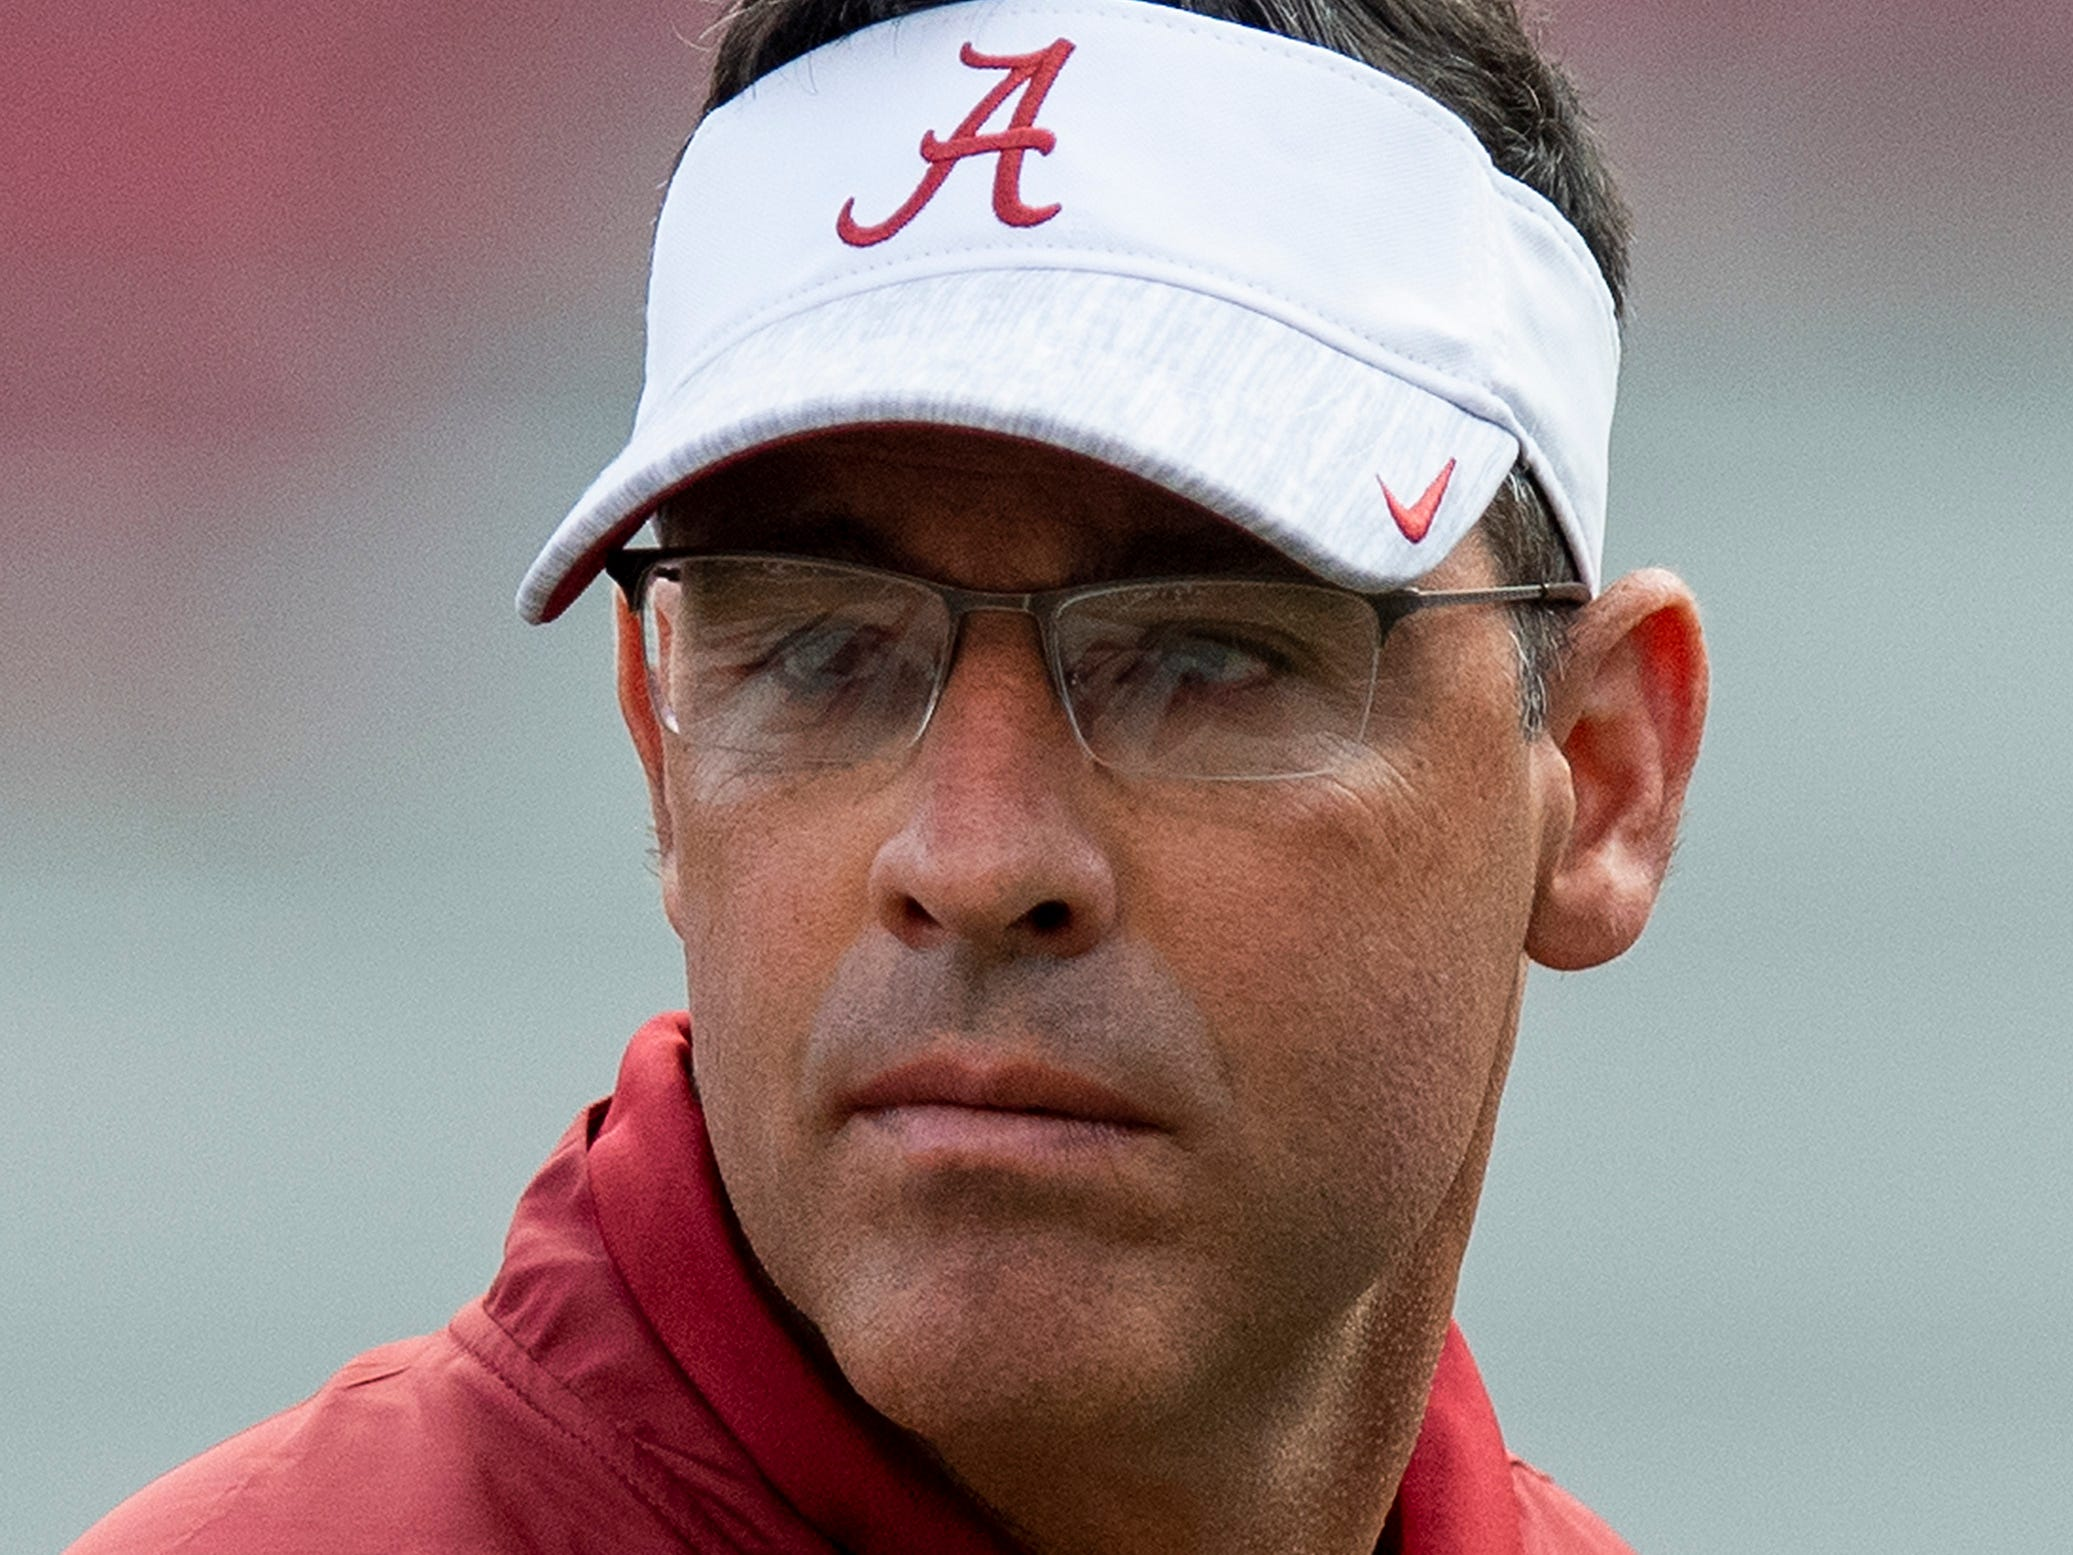 Alabama quarterbacks coach Dan Enos before the Alabama vs. Arkansas game in Fayetteville, Ark., on Saturday October 6, 2018.